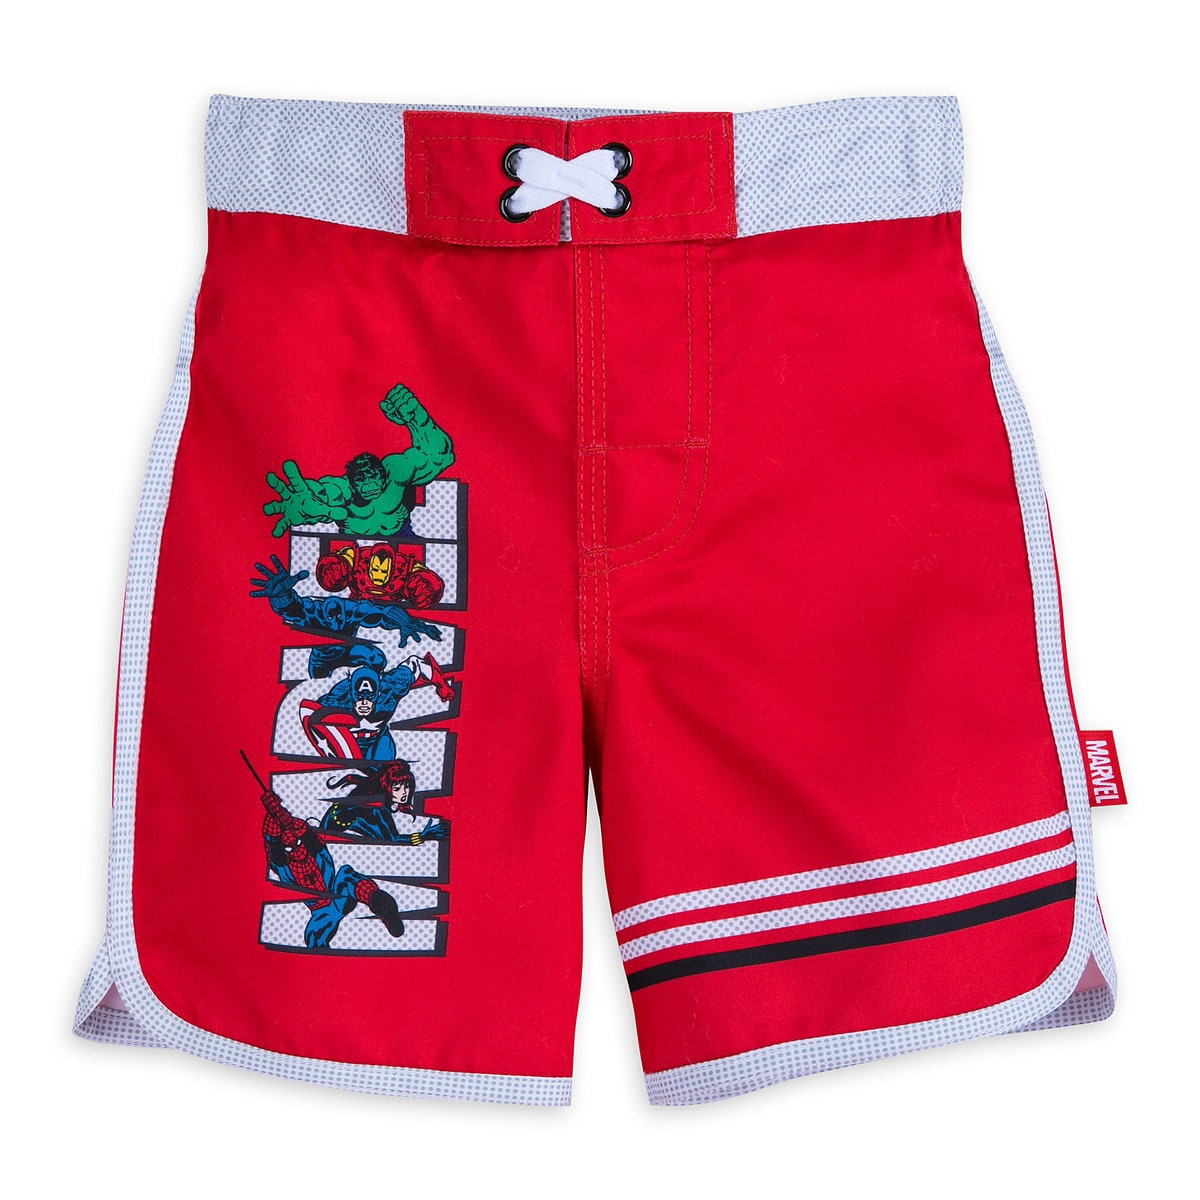 11d0a0ed24 Product Image of Avengers Swim Trunks for Boys # 1